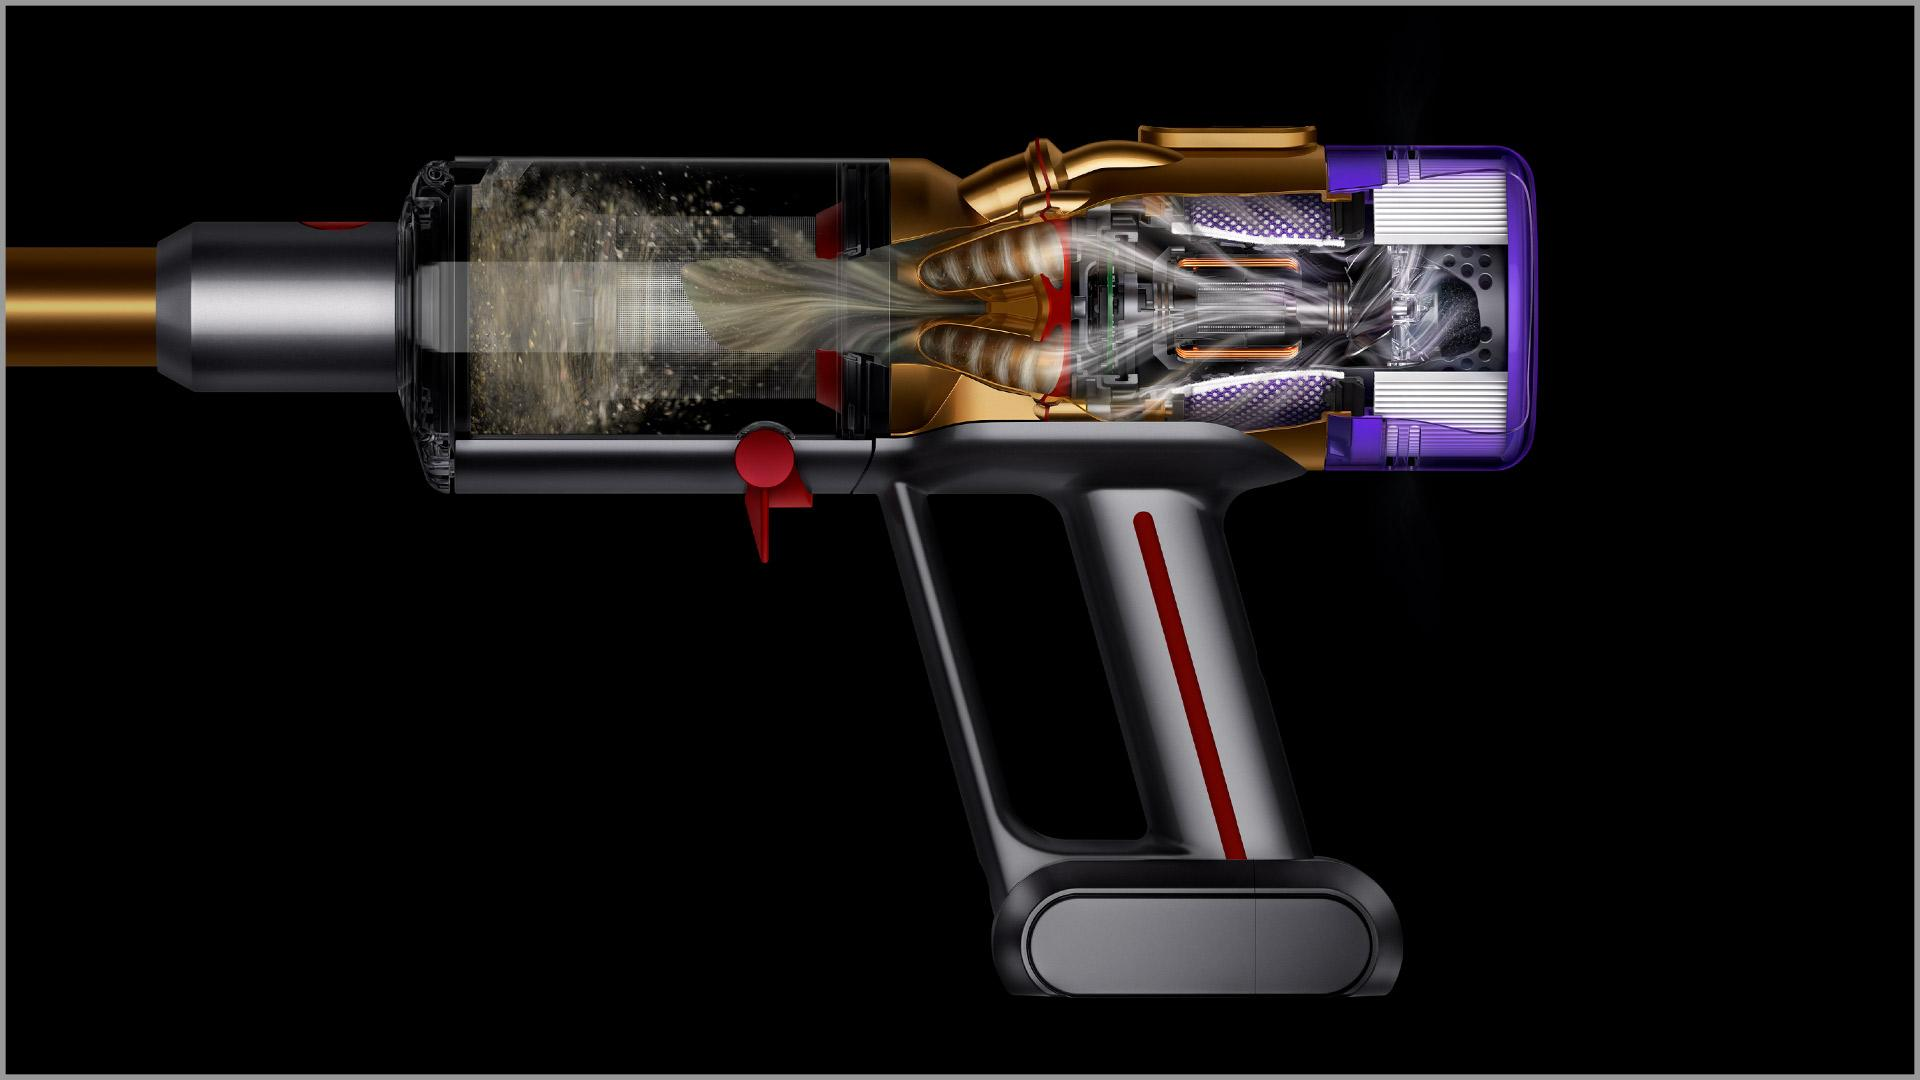 Cutaway of Dyson filter expelling cleaner air